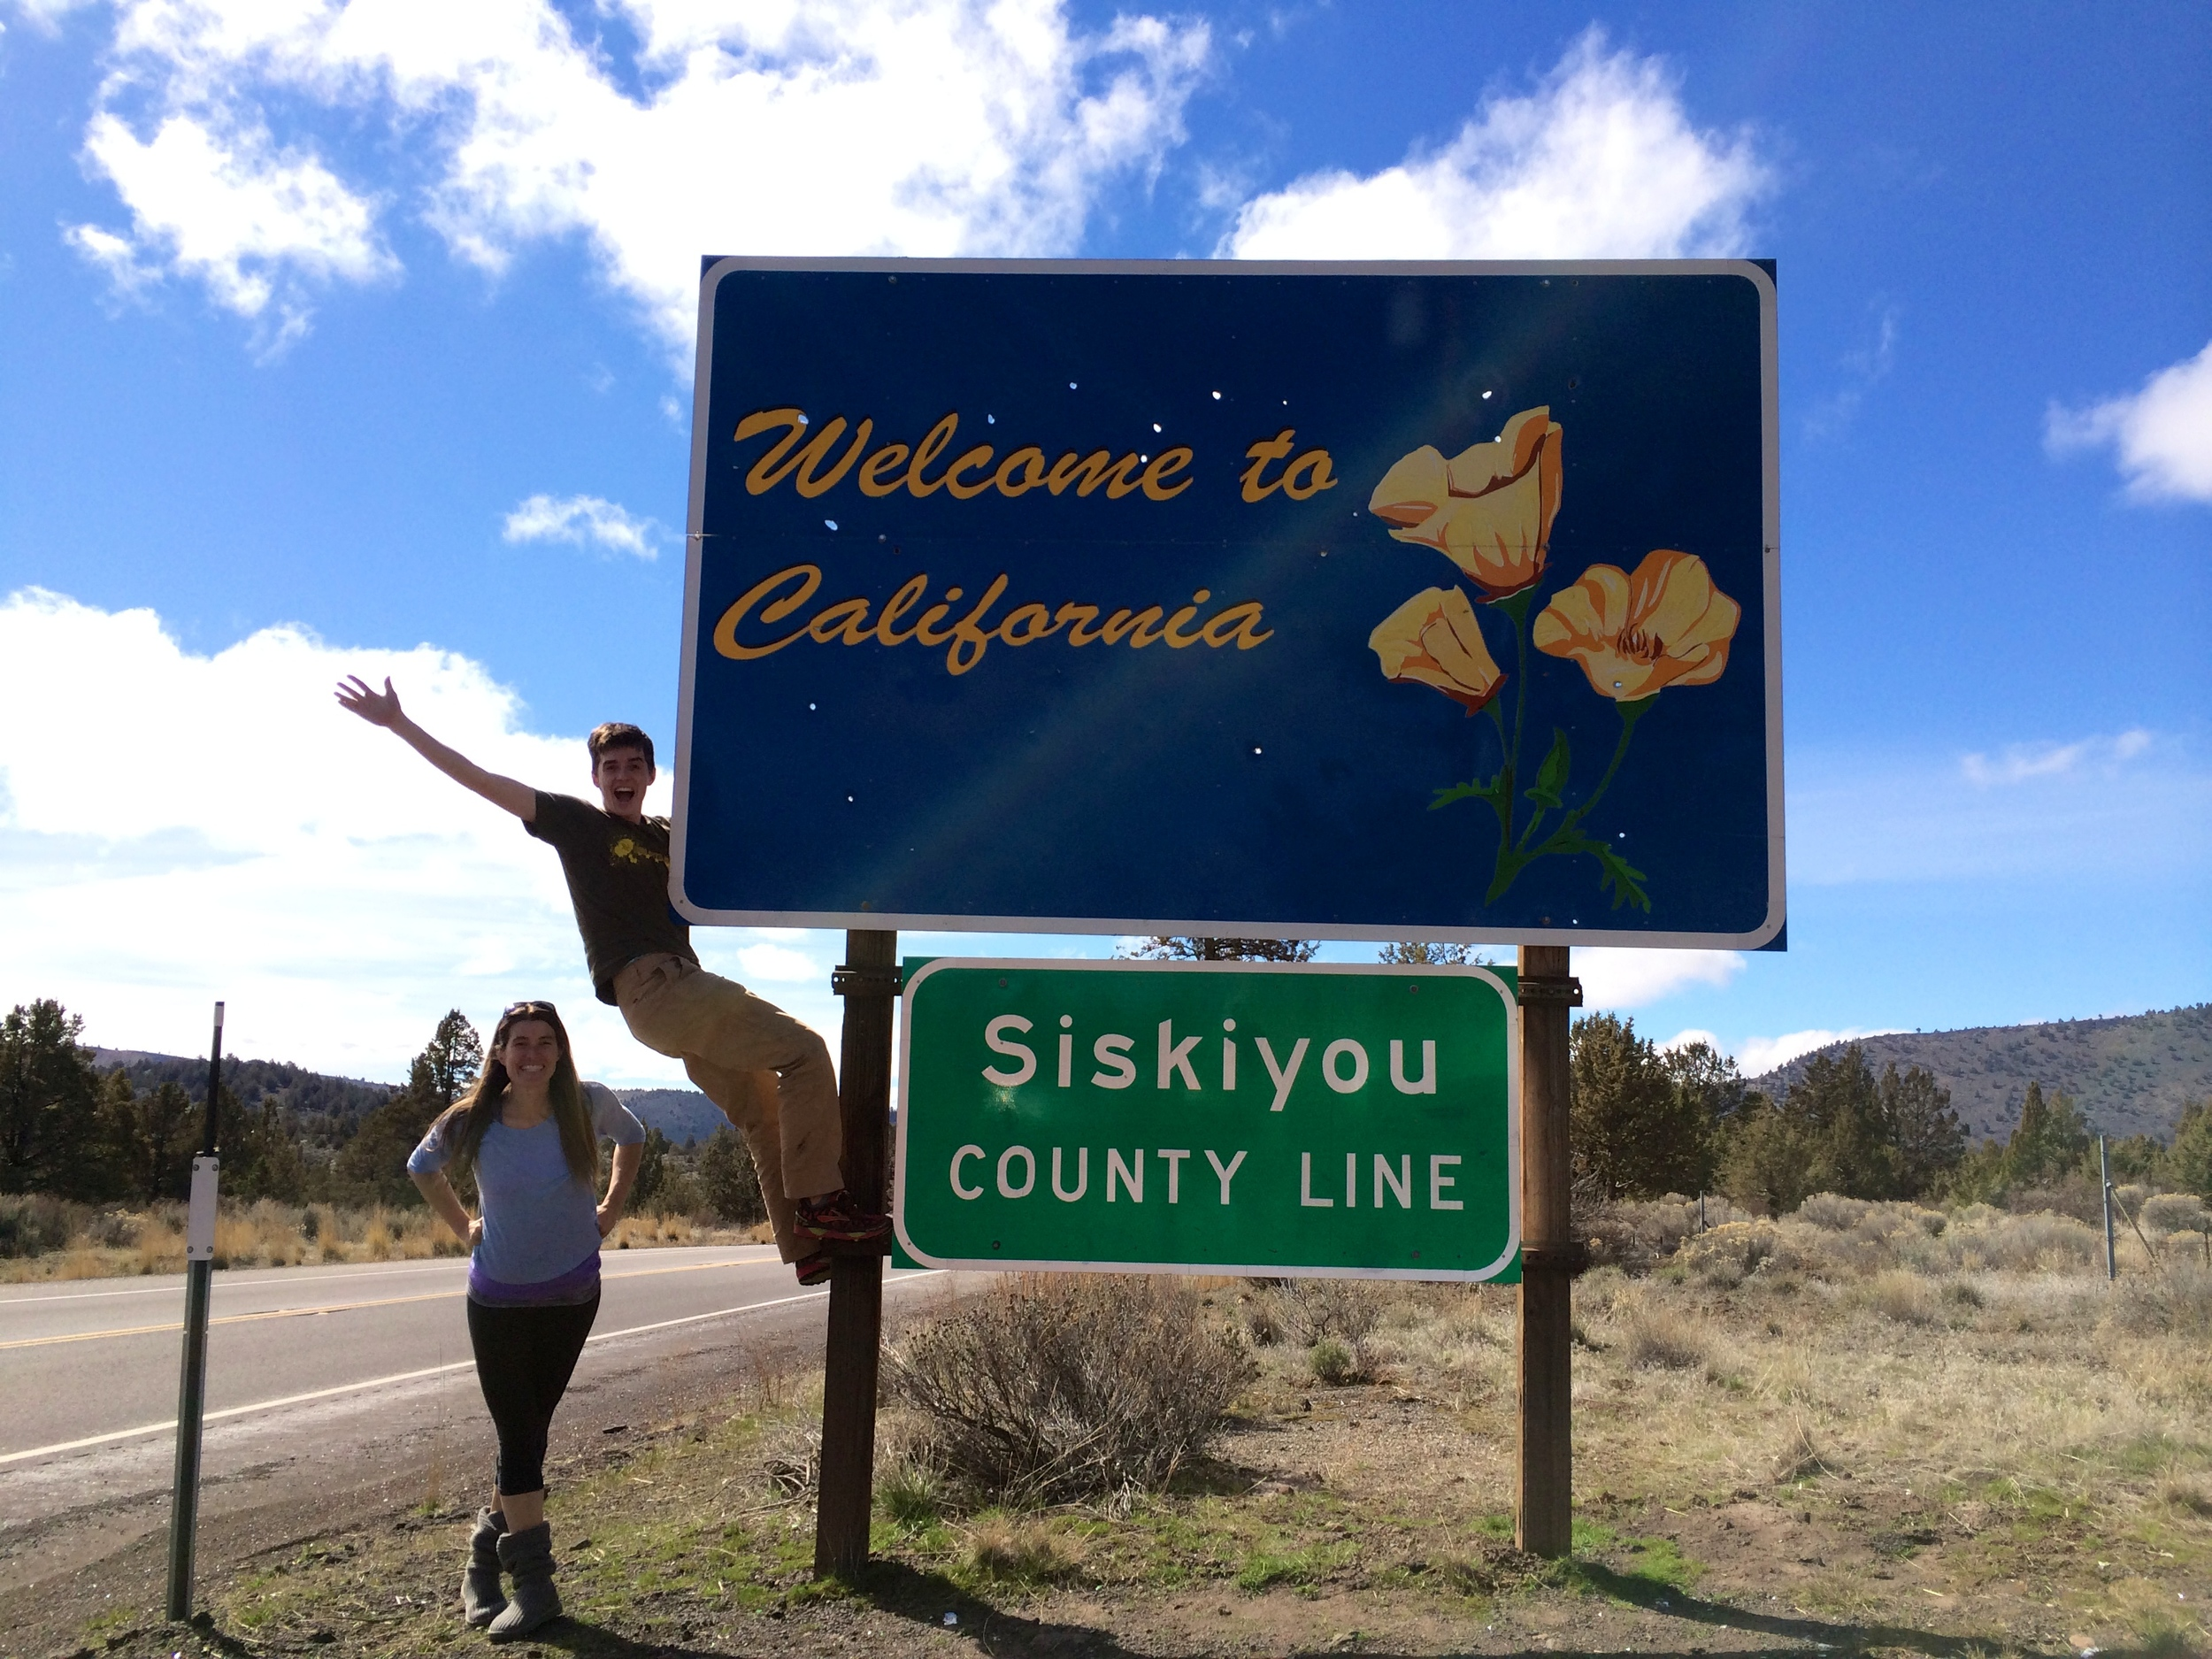 Brooke and Neil entering California for the Way Too Cool 50k Ultra Trail Run